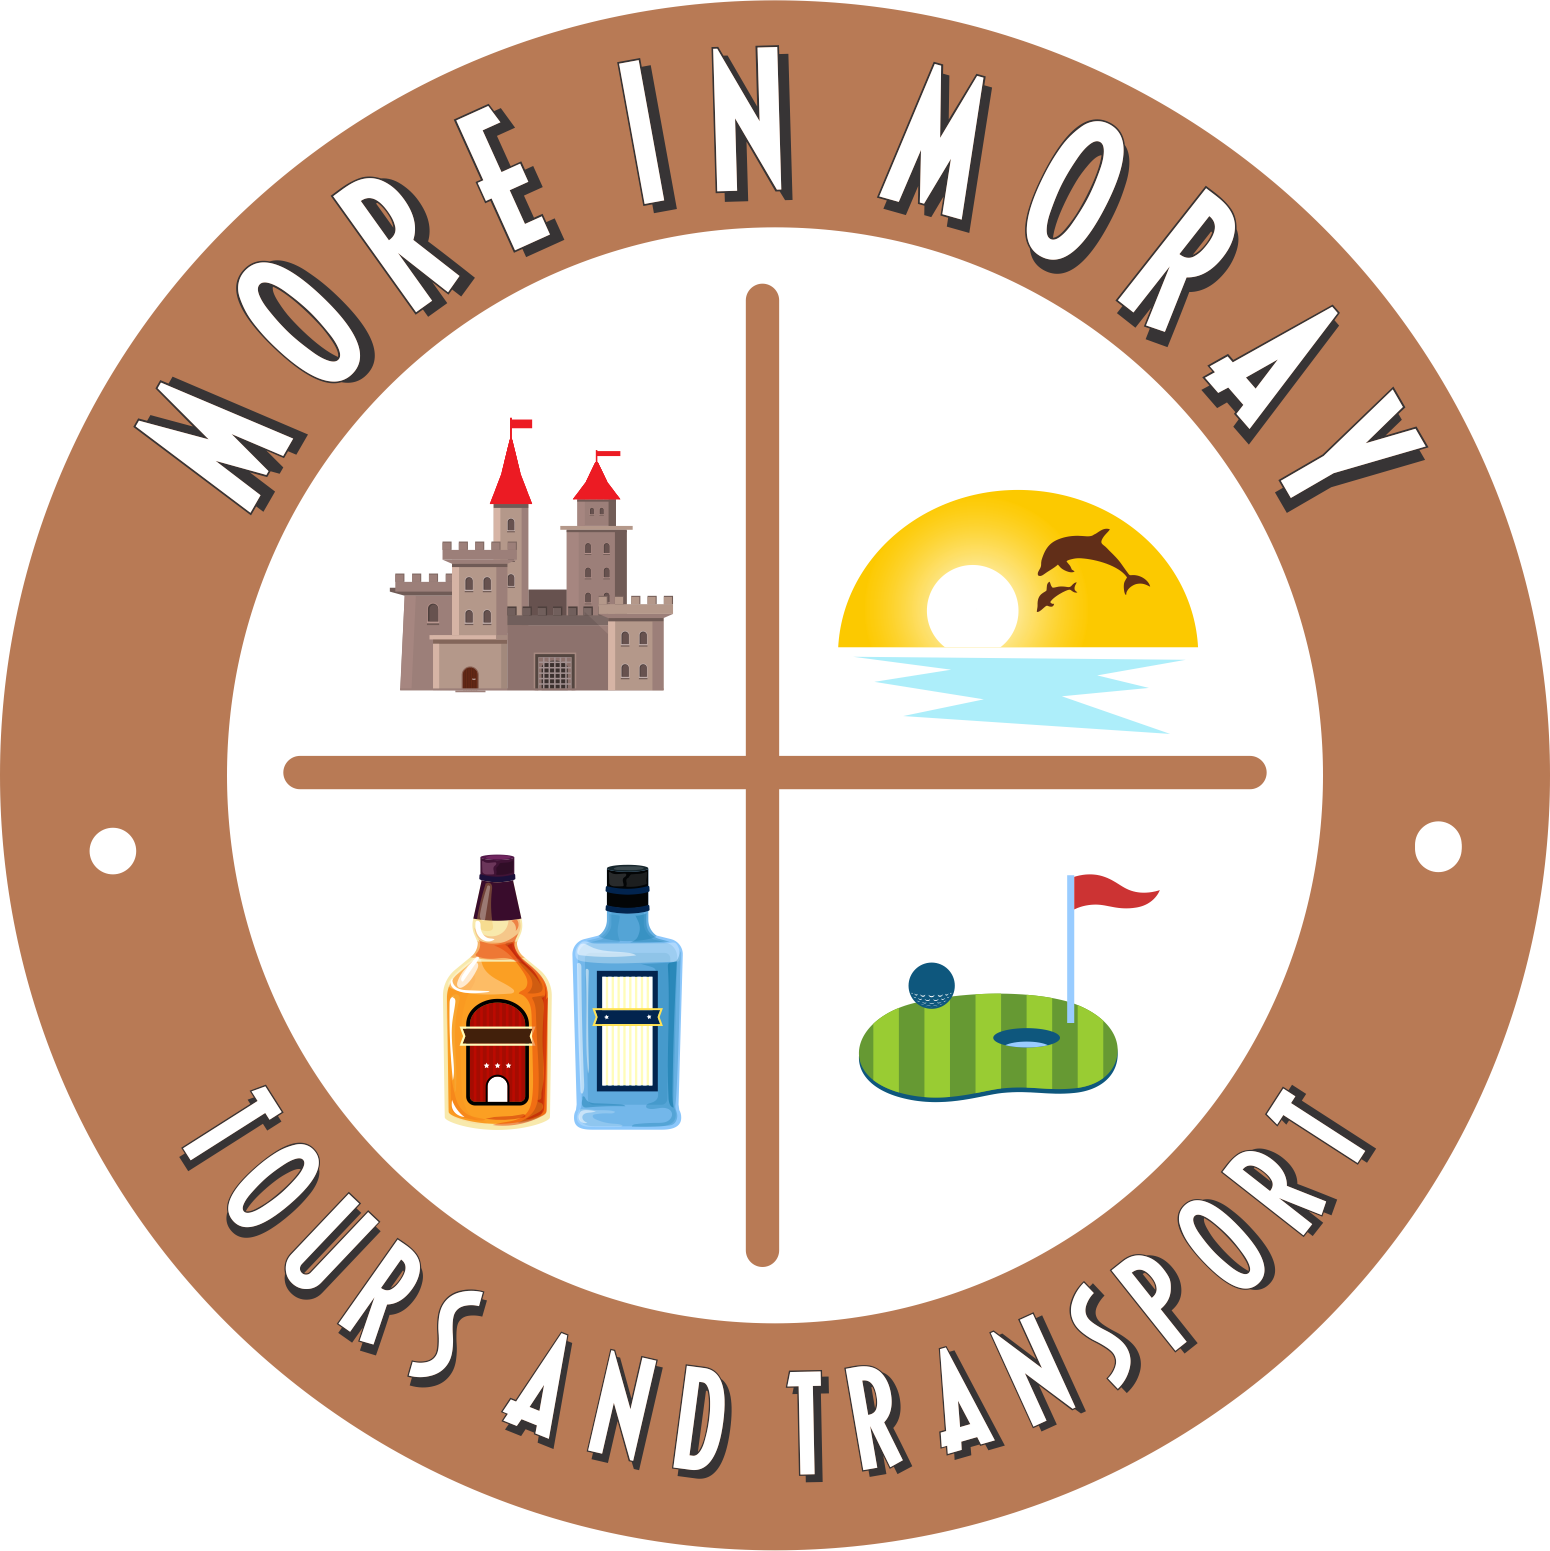 More in Moray Tours and Transport | Terms & conditions - More in Moray Tours and Transport